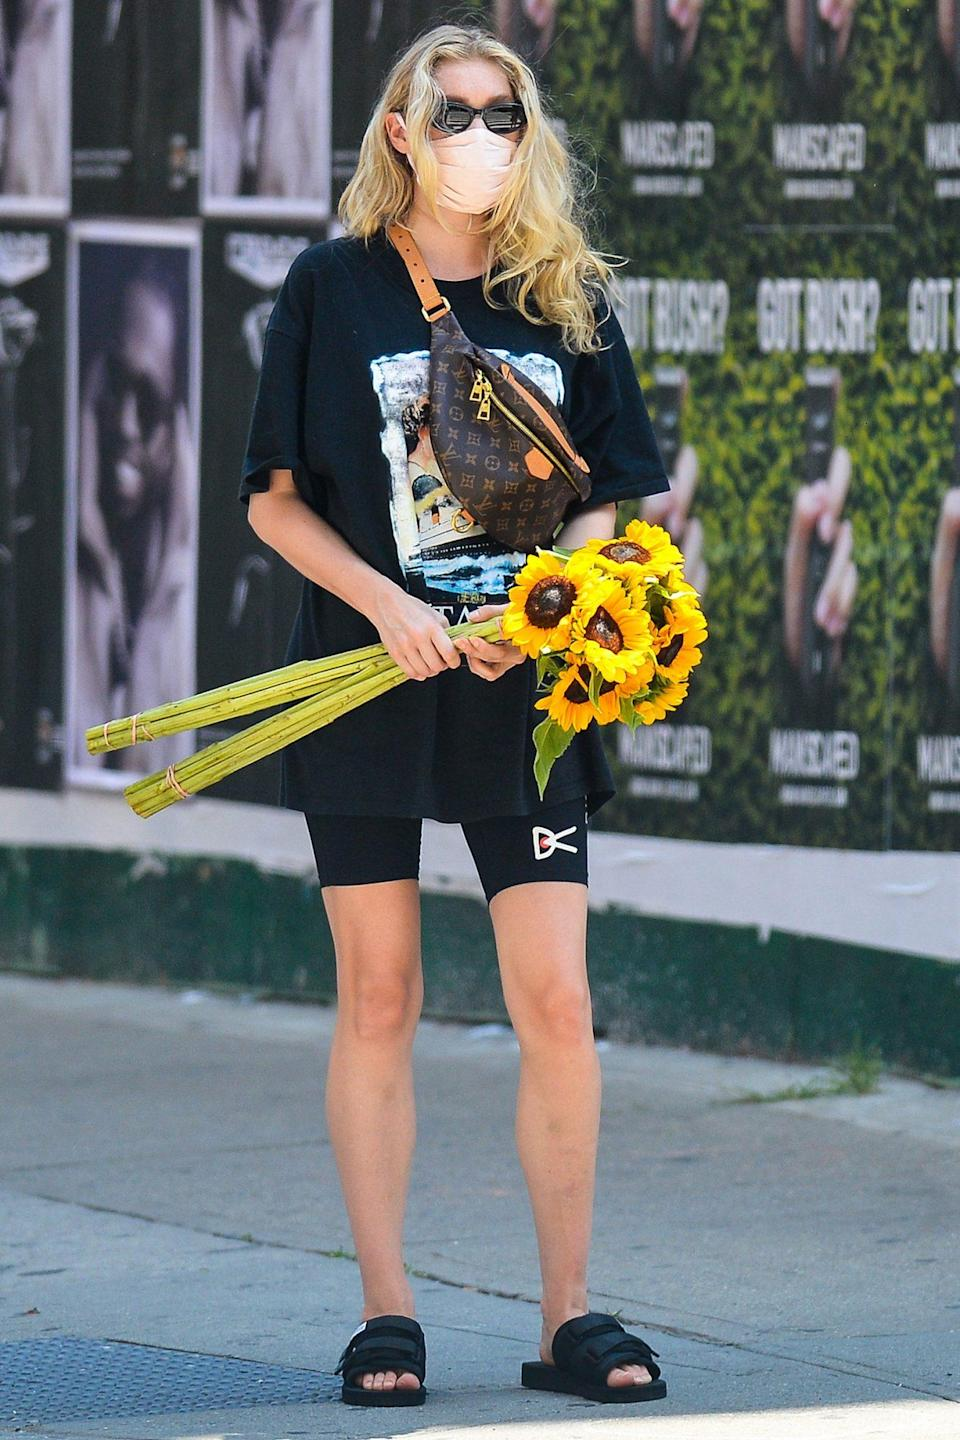 <p>Elsa Hosk makes her way through downtown N.Y.C. on Monday with a handful of sunflowers.</p>